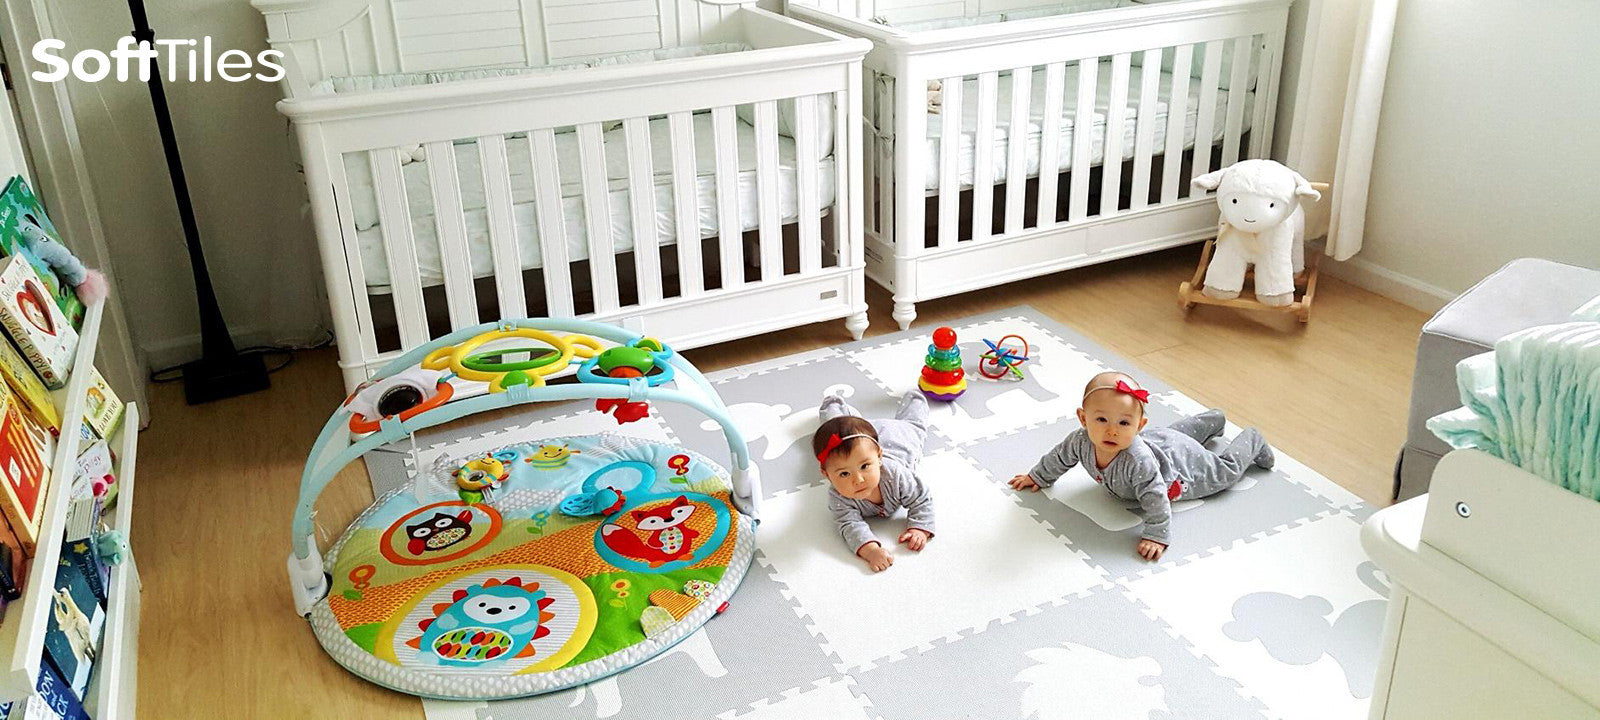 mat babies mats jigsaws baby others puzzle kids playground fecing carousell fence play child p crawl playmat floor on infant